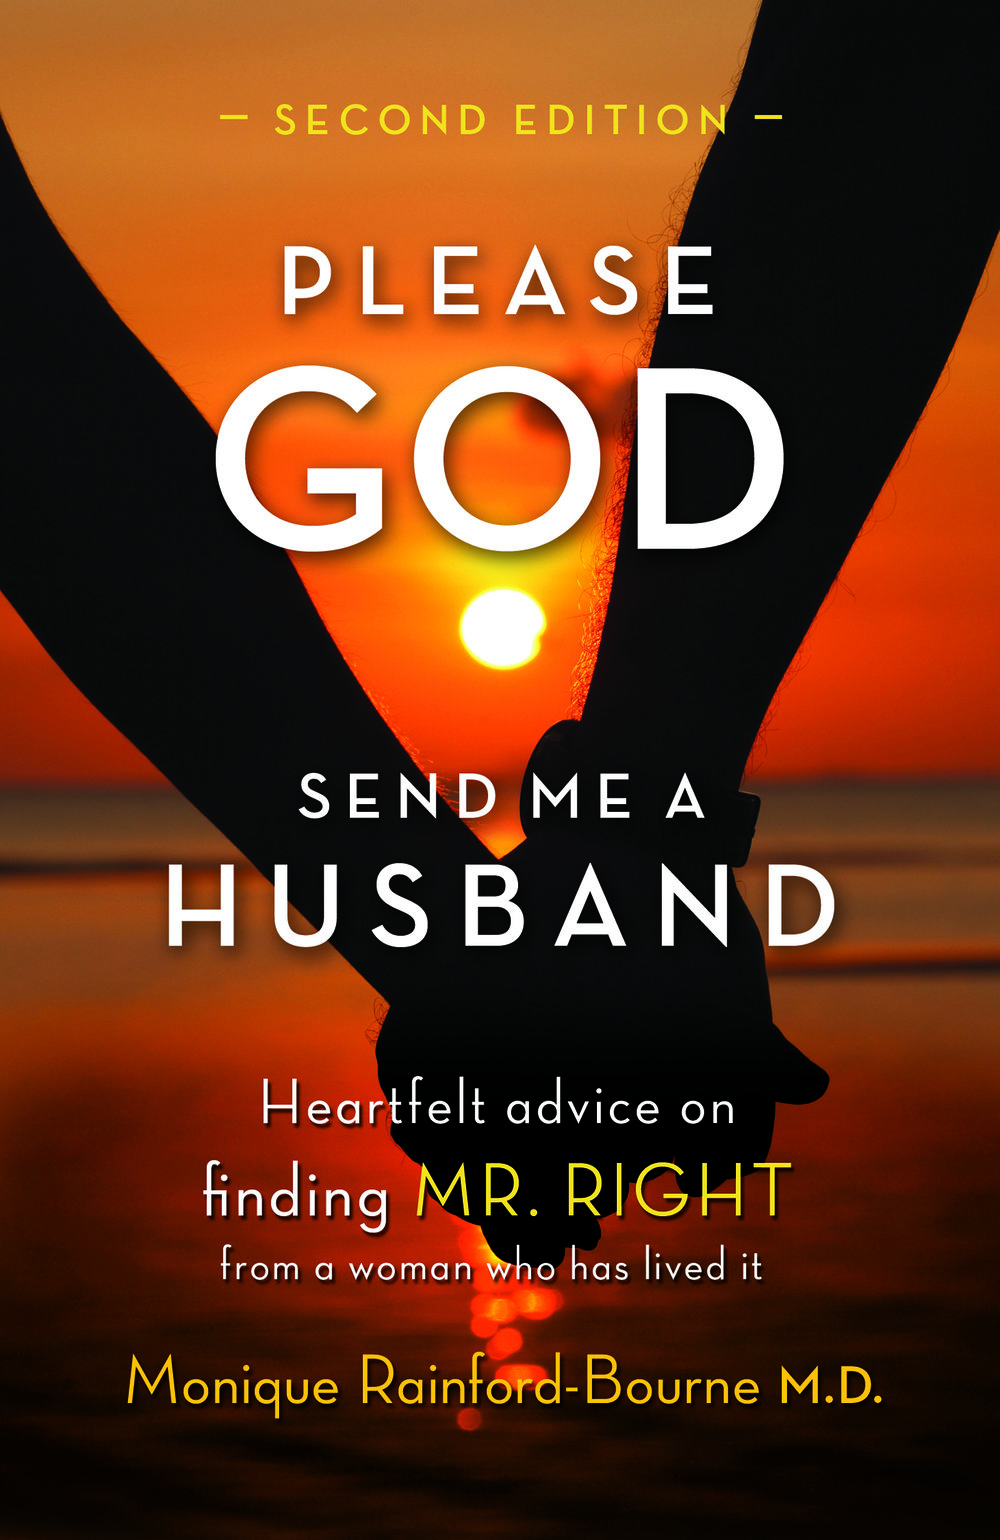 Rainford-IngramSparks-BookCover Please God send me a husband second editon.jpg